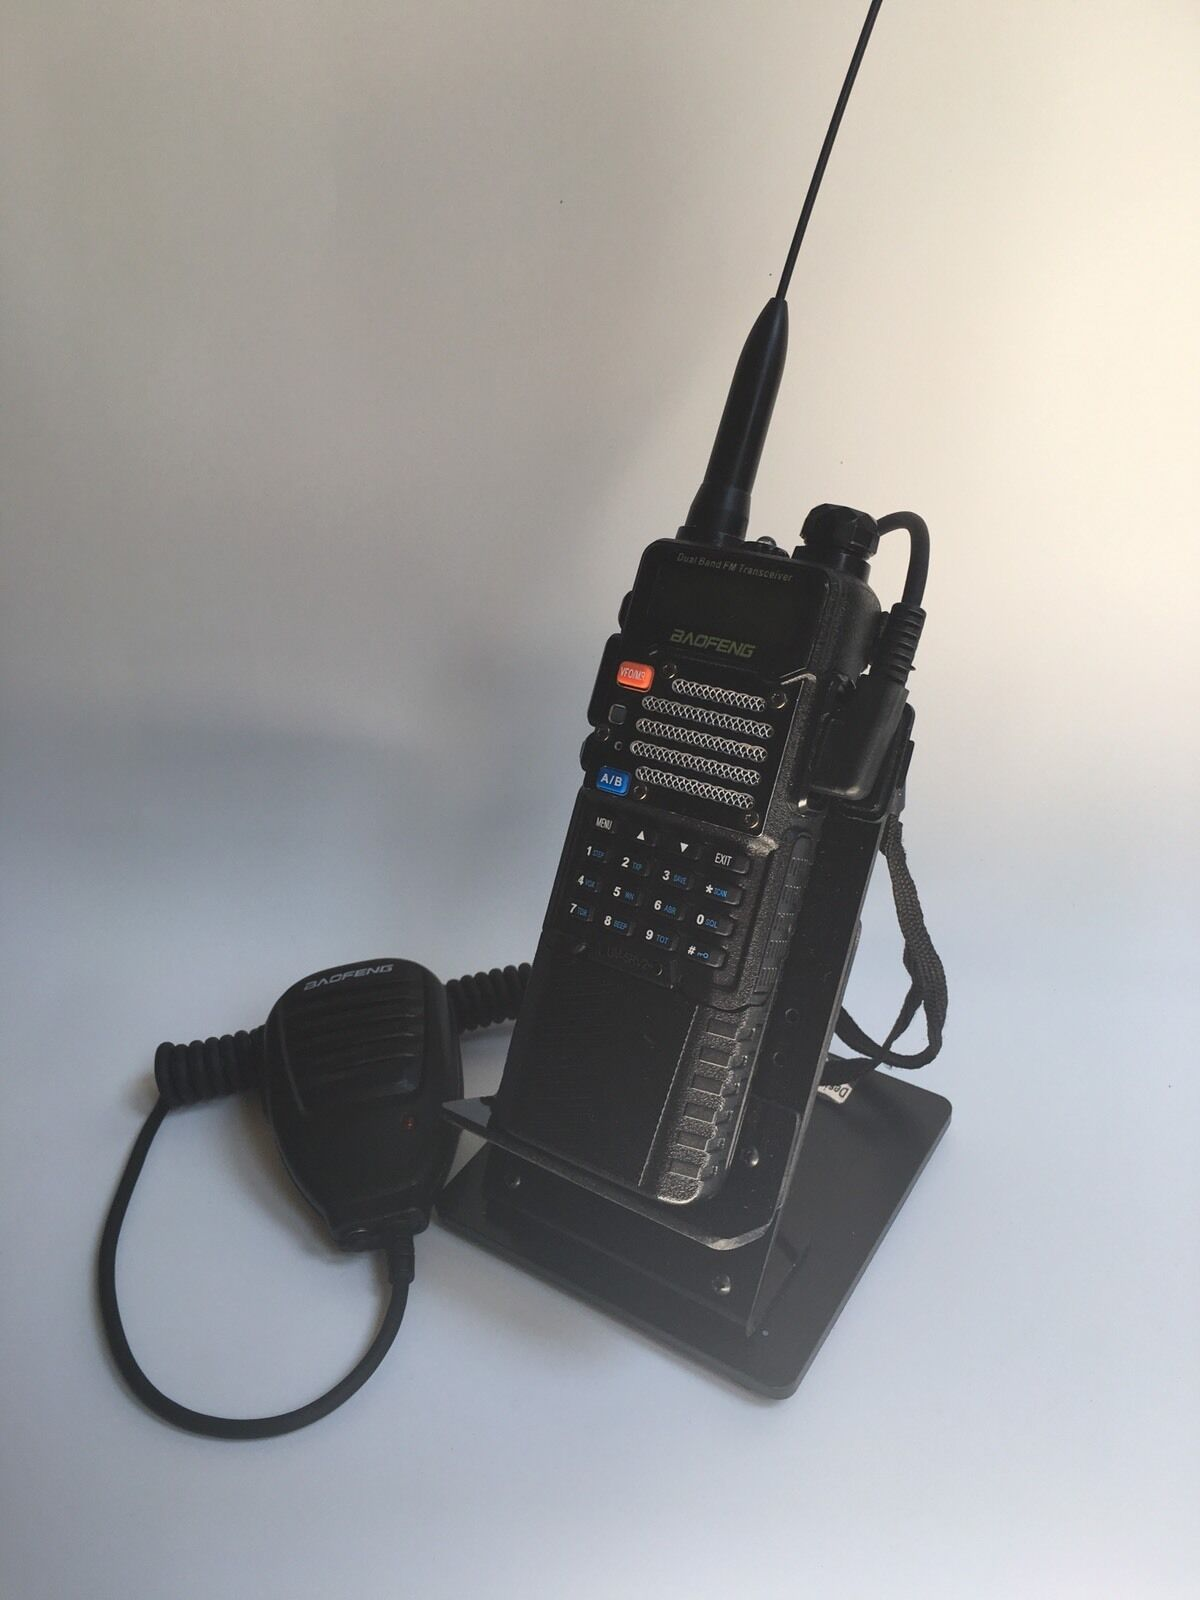 497 furthermore Yaesu Ft Dx 5000 in addition 0590 likewise 6 Antenna For 6 Meters as well YAESU FT 7 80 10M Vintage And QRP TRANSCEIVER HF 253076416629. on best ham radio transceivers